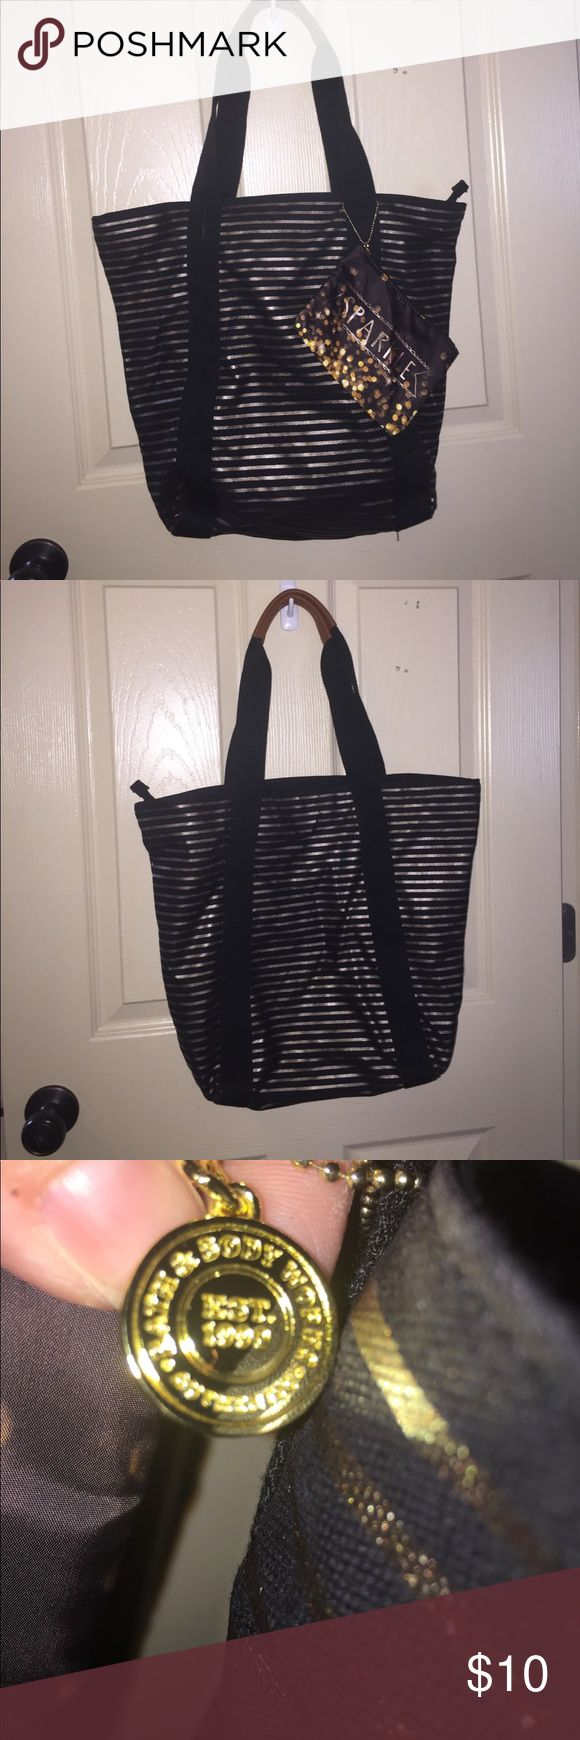 Bath & Body Works Tote Bag Black and gold big tote bags that you buy at Bath & Body Works with products inside.  Never used.  Still has tag.  Also comes with a little tote/make up bag. Bath & Body Works Bags Totes